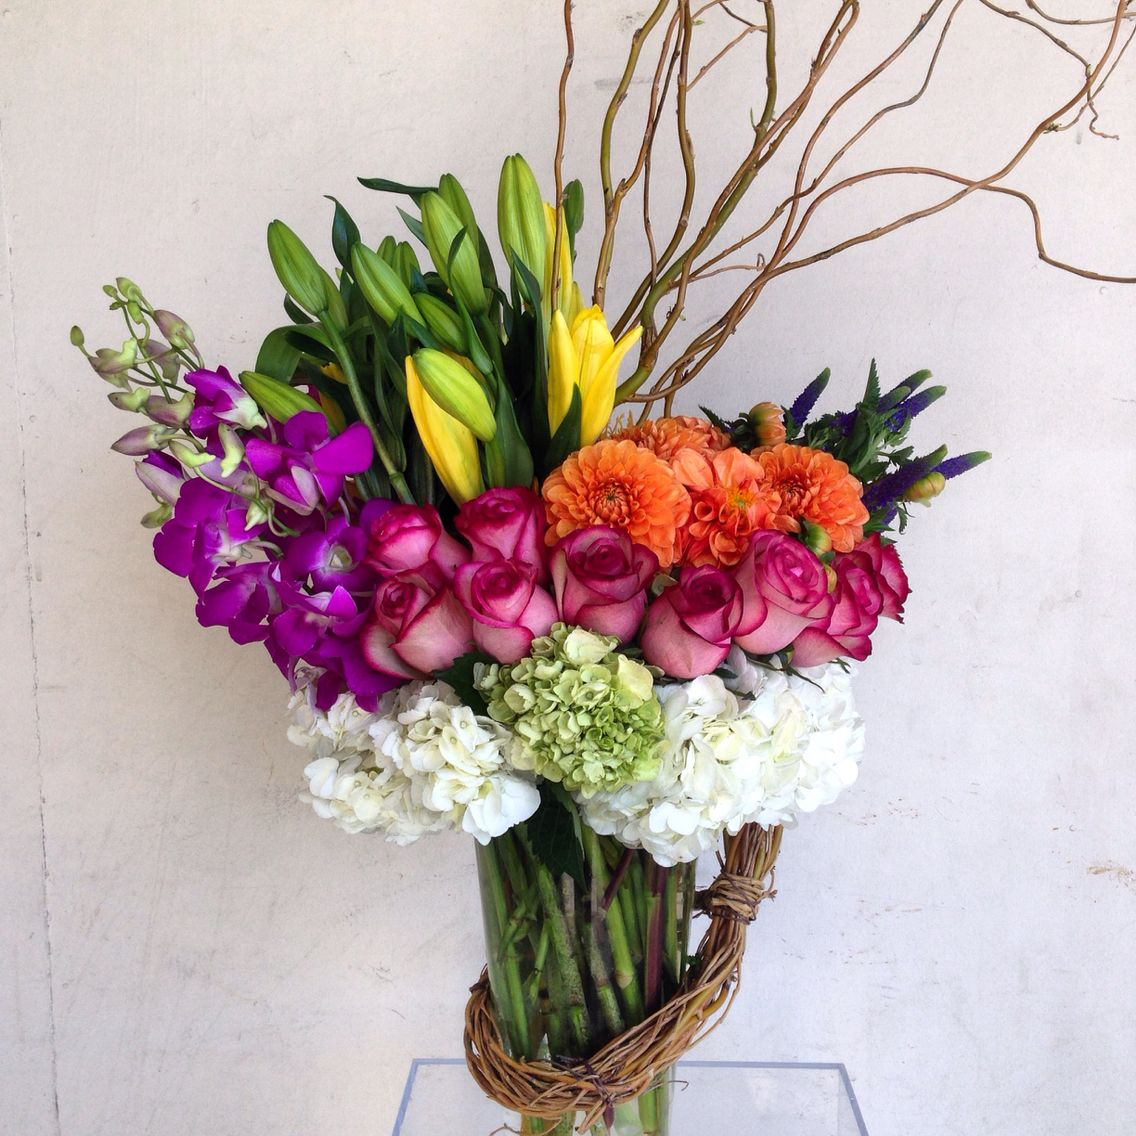 Arrangement of the day by my little flower shop designed by alan my little flower shop is a boutique palm springs florist and event design studio located in the heart of palm springs californias chic uptown design mightylinksfo Choice Image